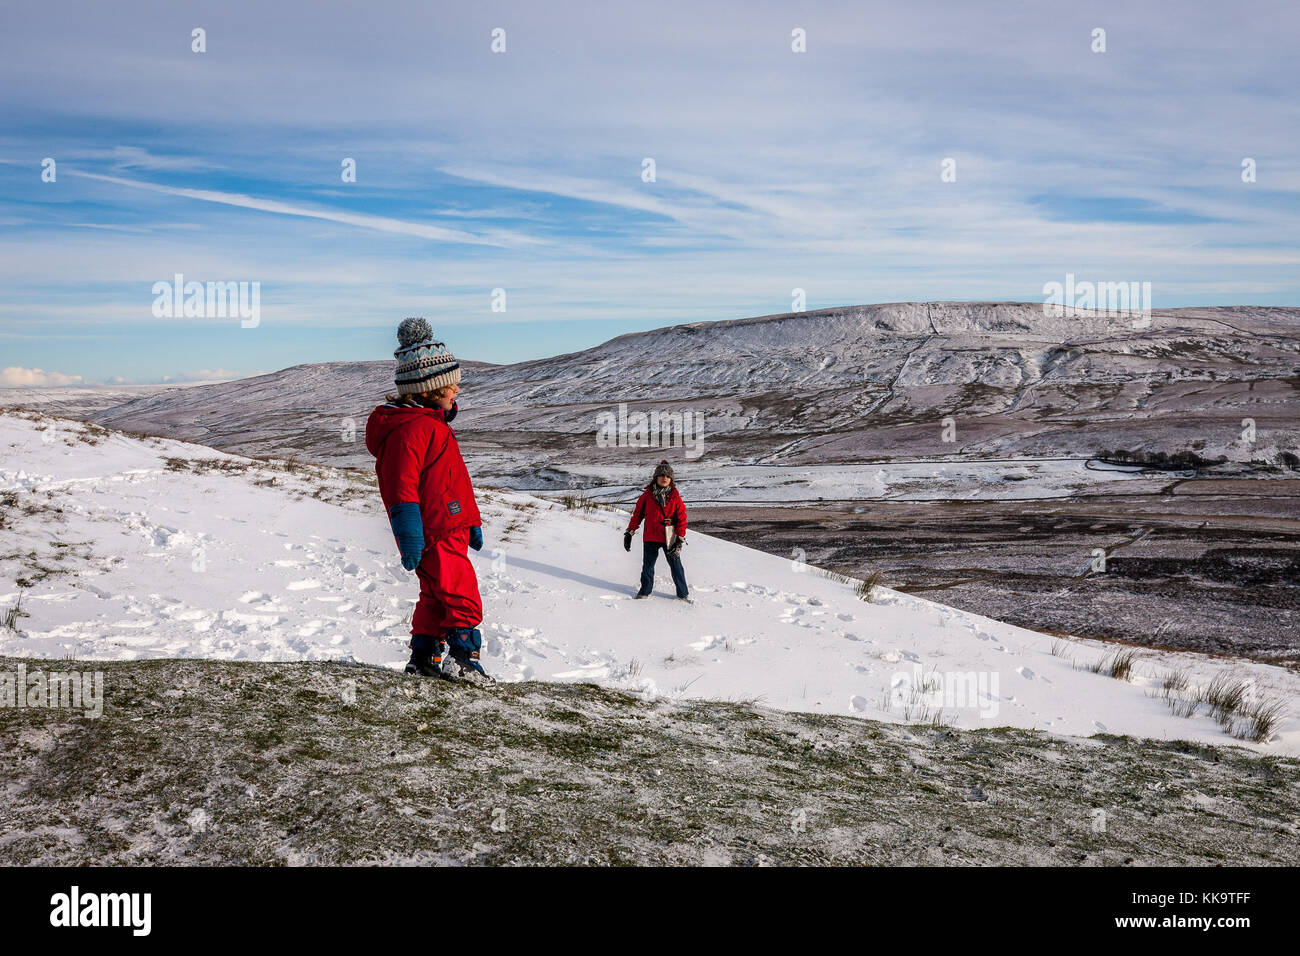 Children playing in the winter snow on Pen Y Ghent (694m), Yorkshire Dales England - Stock Image